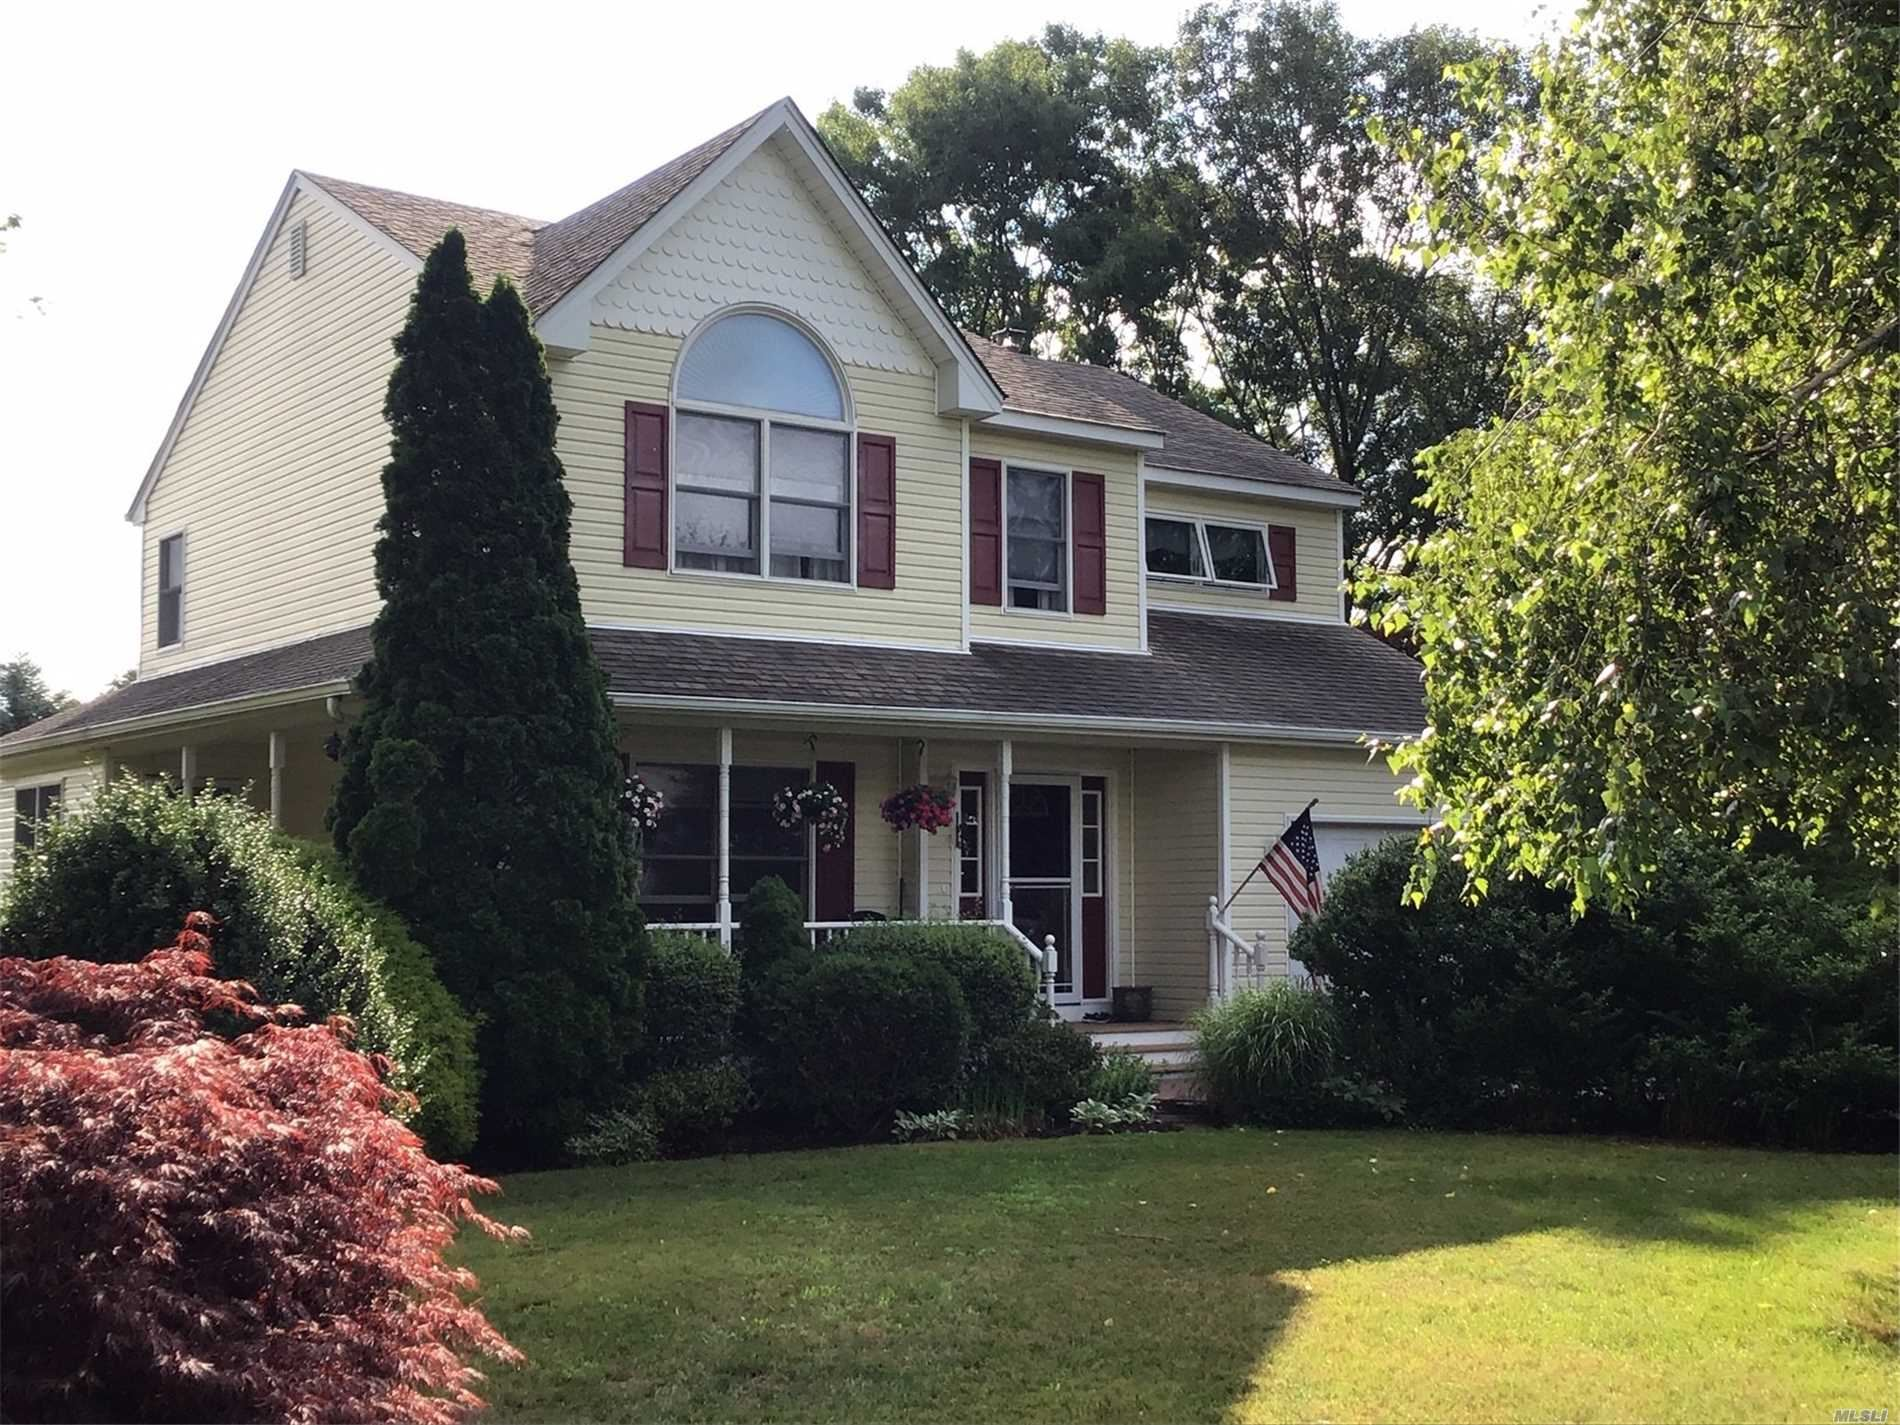 70 Fairway Drive, Wading River, NY 11792 - MLS#: 3206858